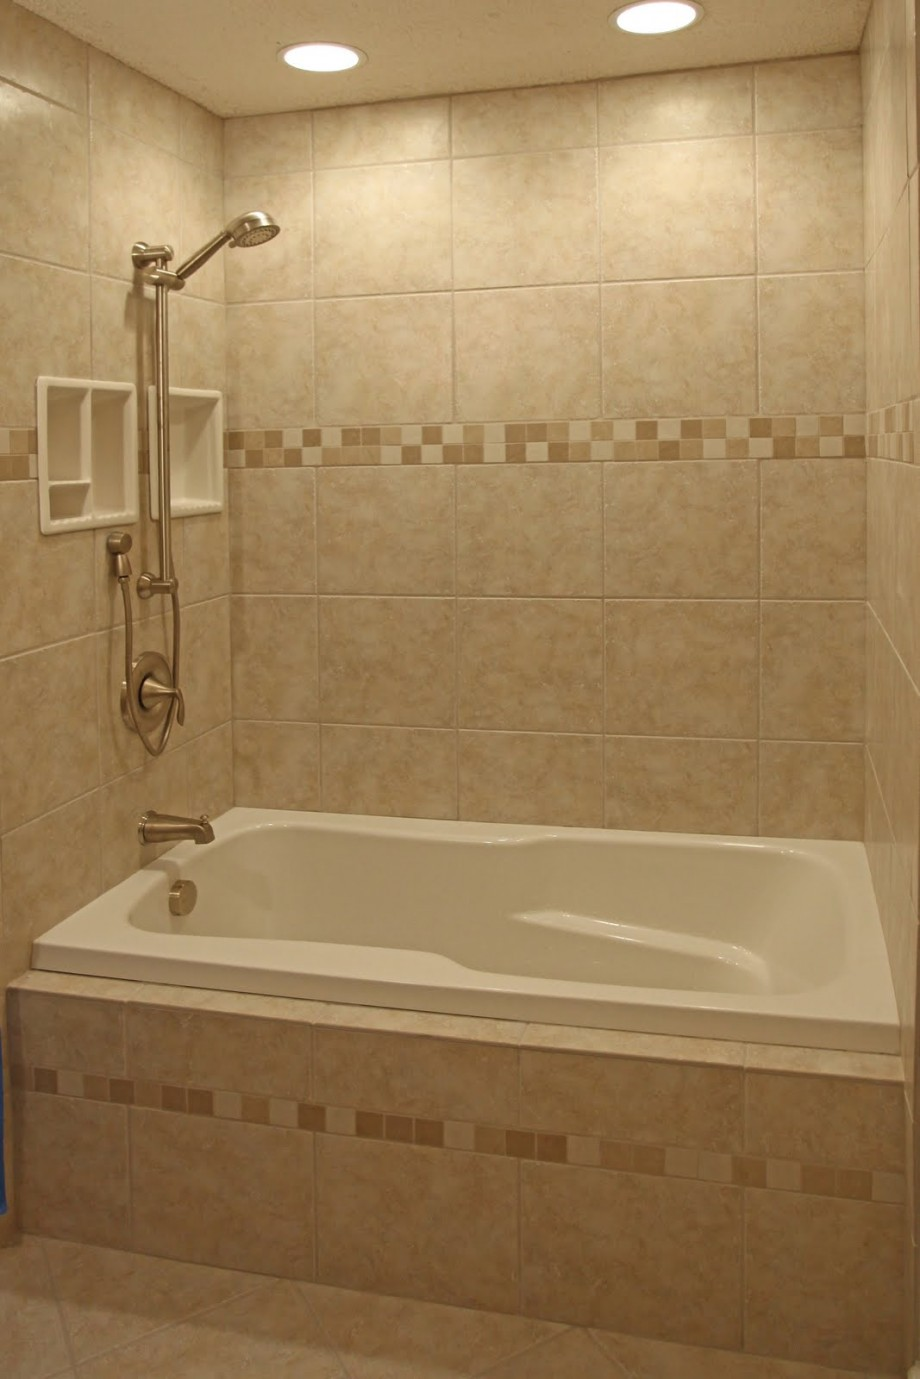 Beau Small Bathroom With Bathtub Also Nice Brown Travetine Tile Flooring